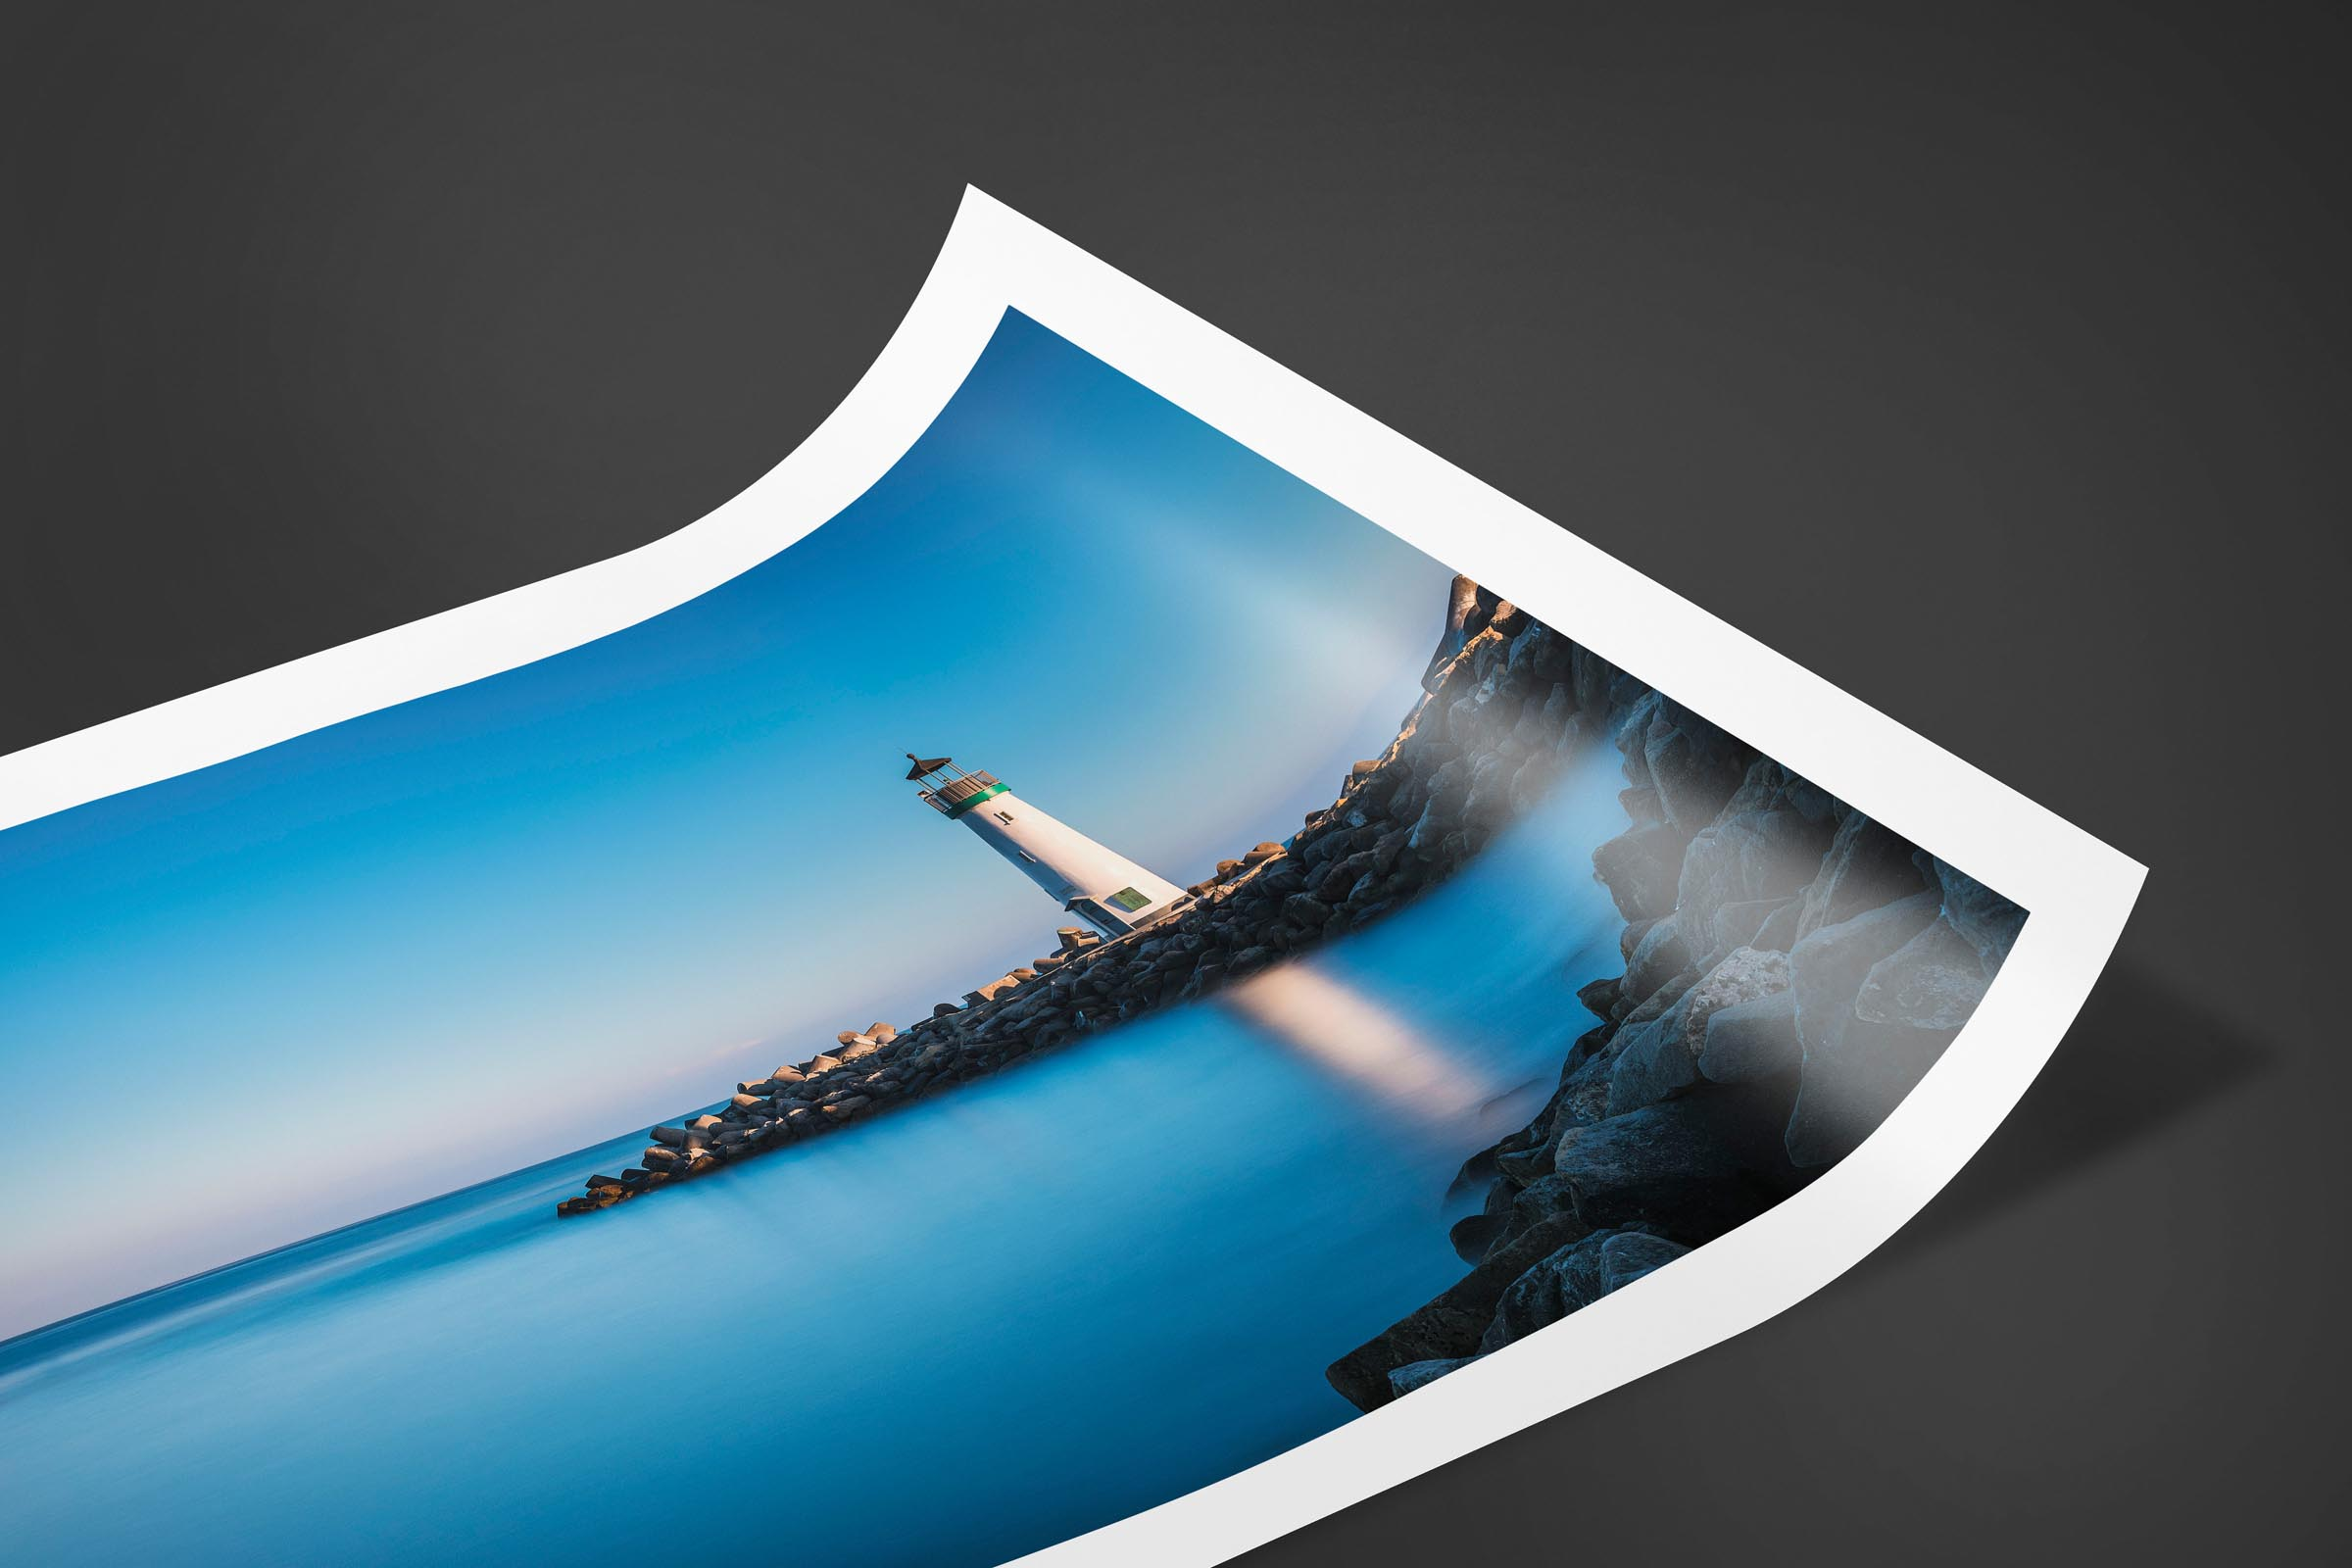 Fine art limited edition print of Walton Lighthouse in Santa Cruz, California by Brent Goldman Photography